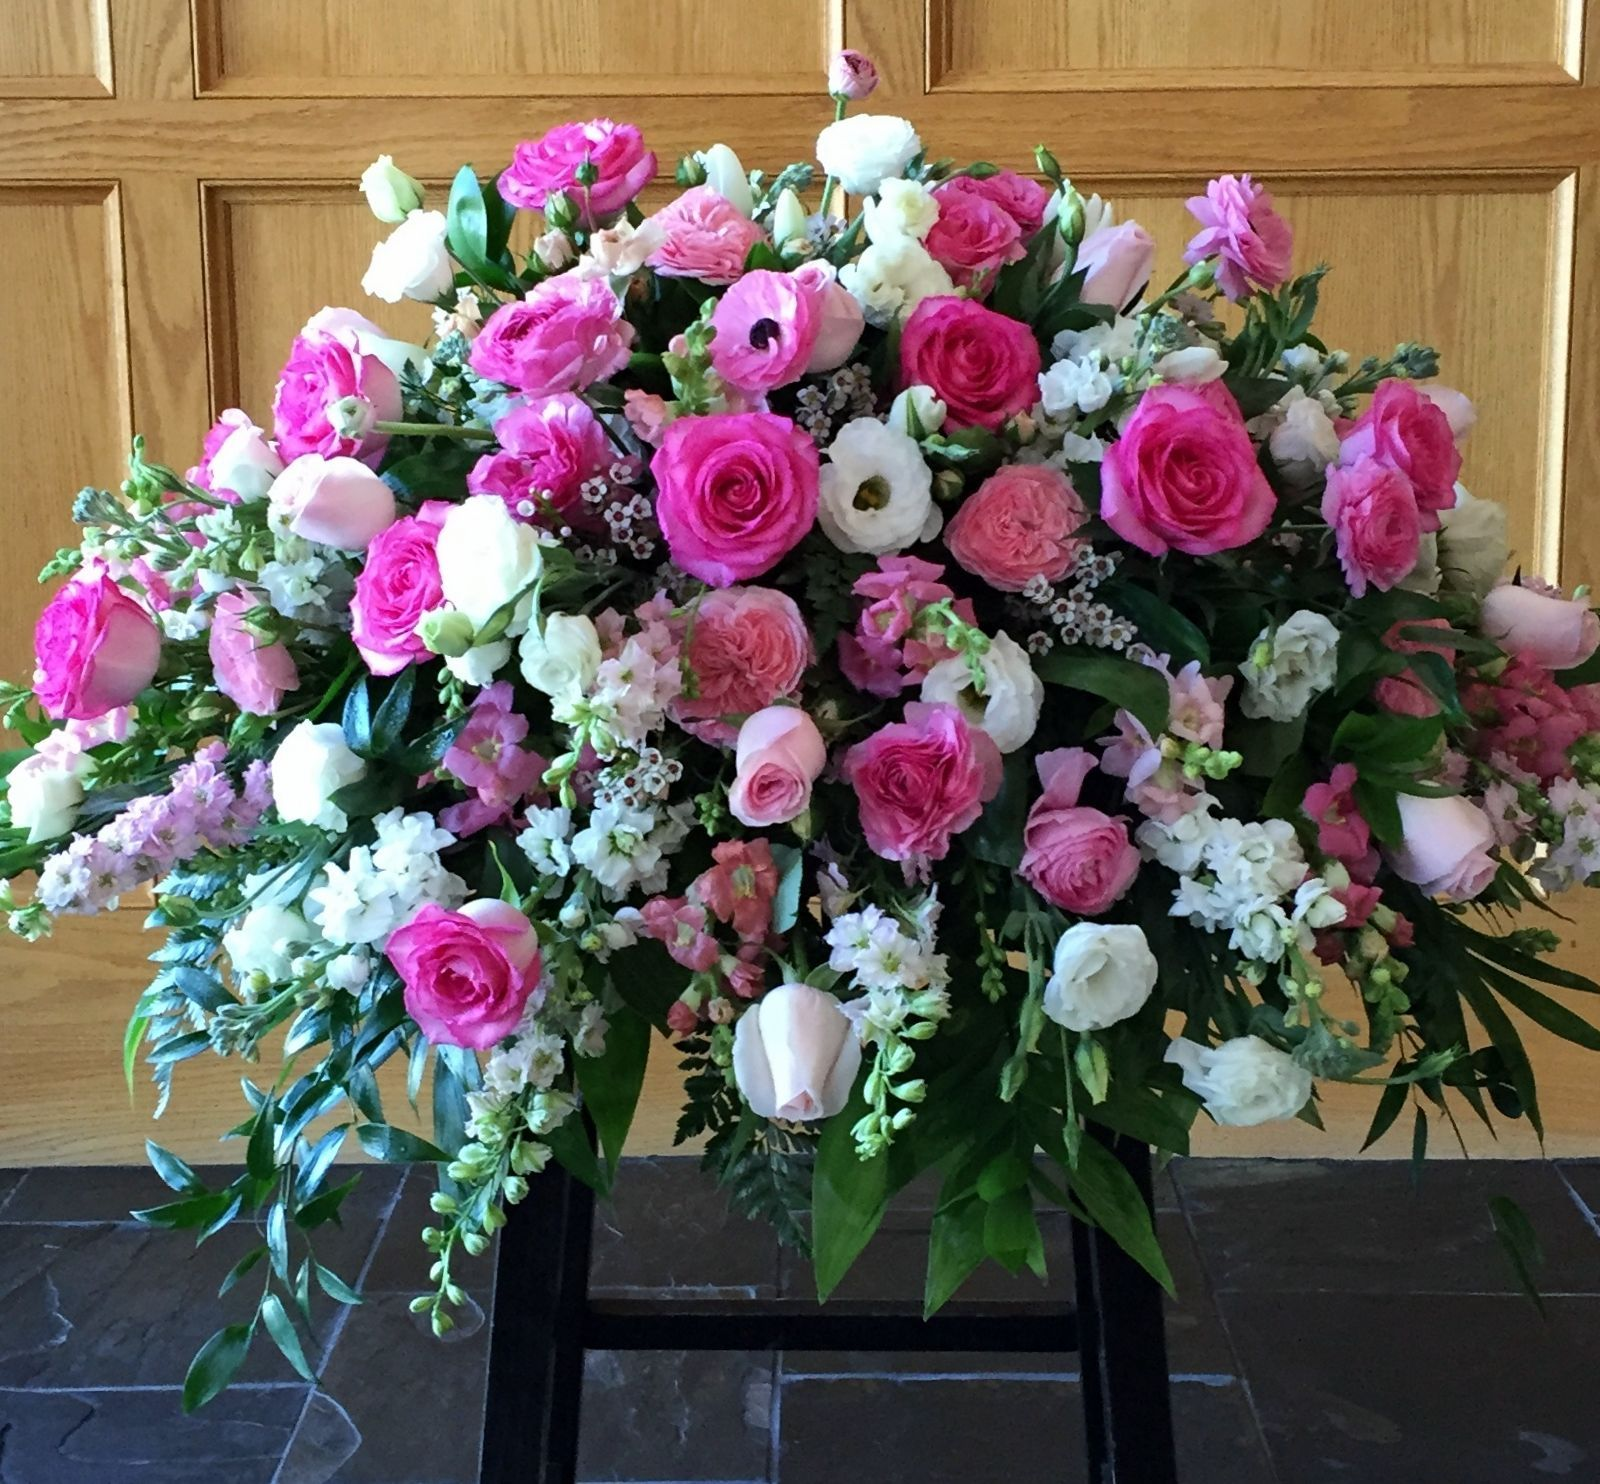 Pink And White Spring Casket Flowers Funeral Flower Arrangements Memorial Flowers